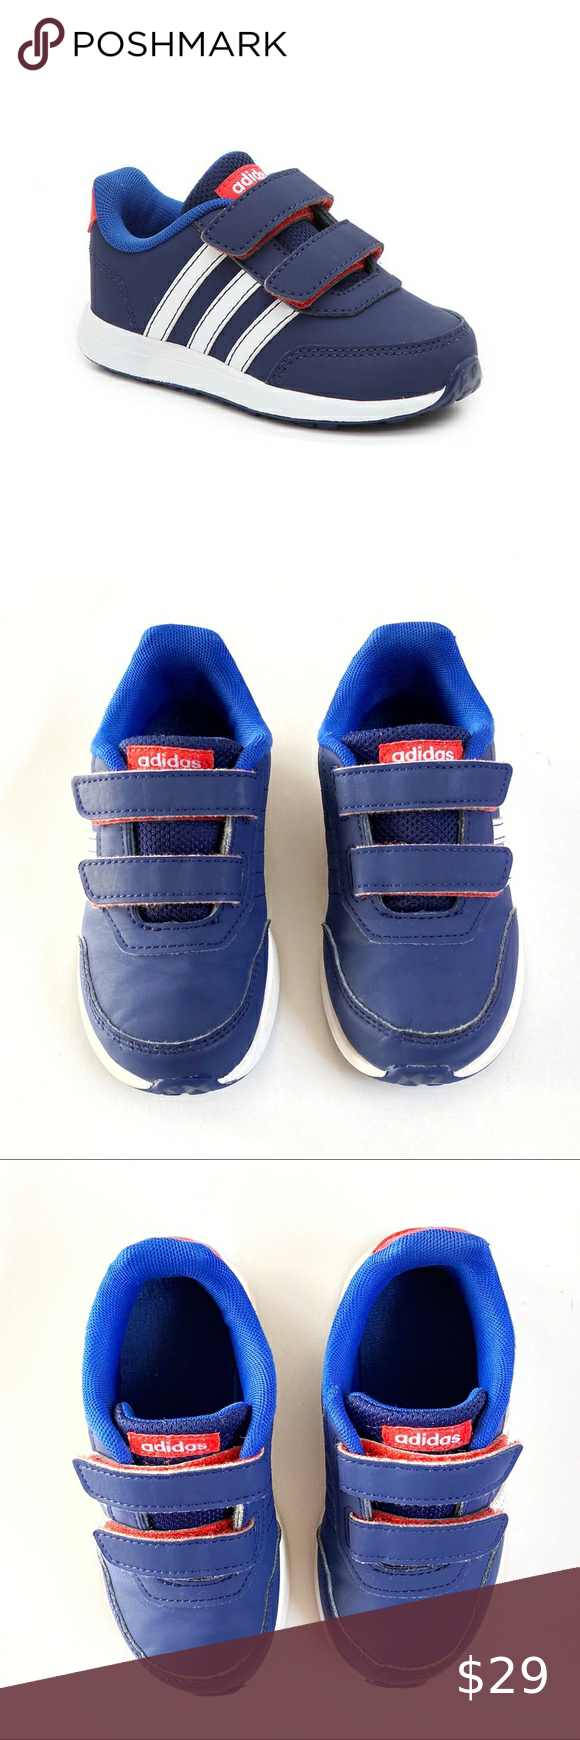 Adidas kids blue white red switch 2 sneaker shoes   Shoes sneakers ...